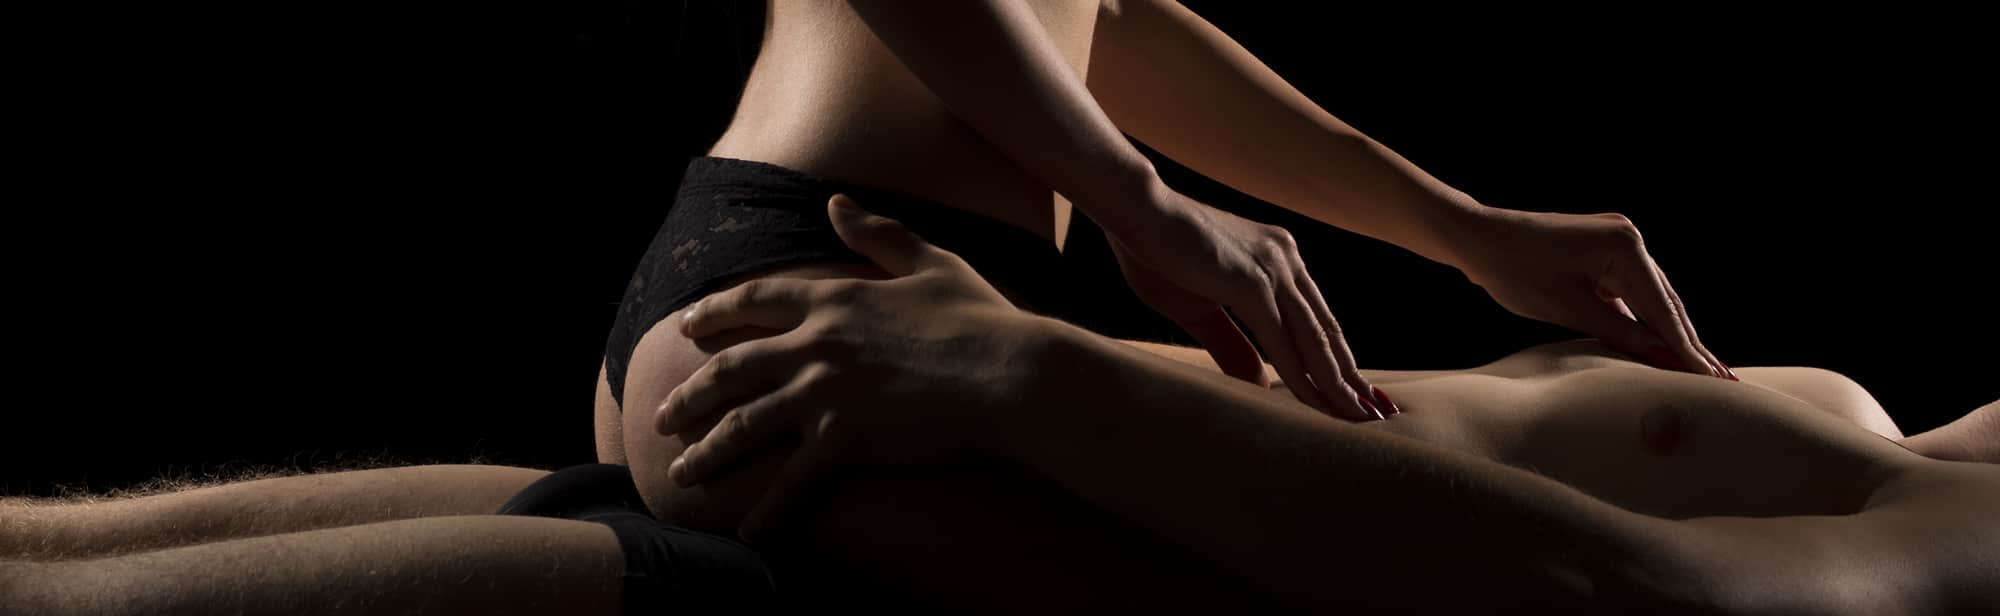 Scientists say: Sensual massage can resolve negative patterns and boost your productivity